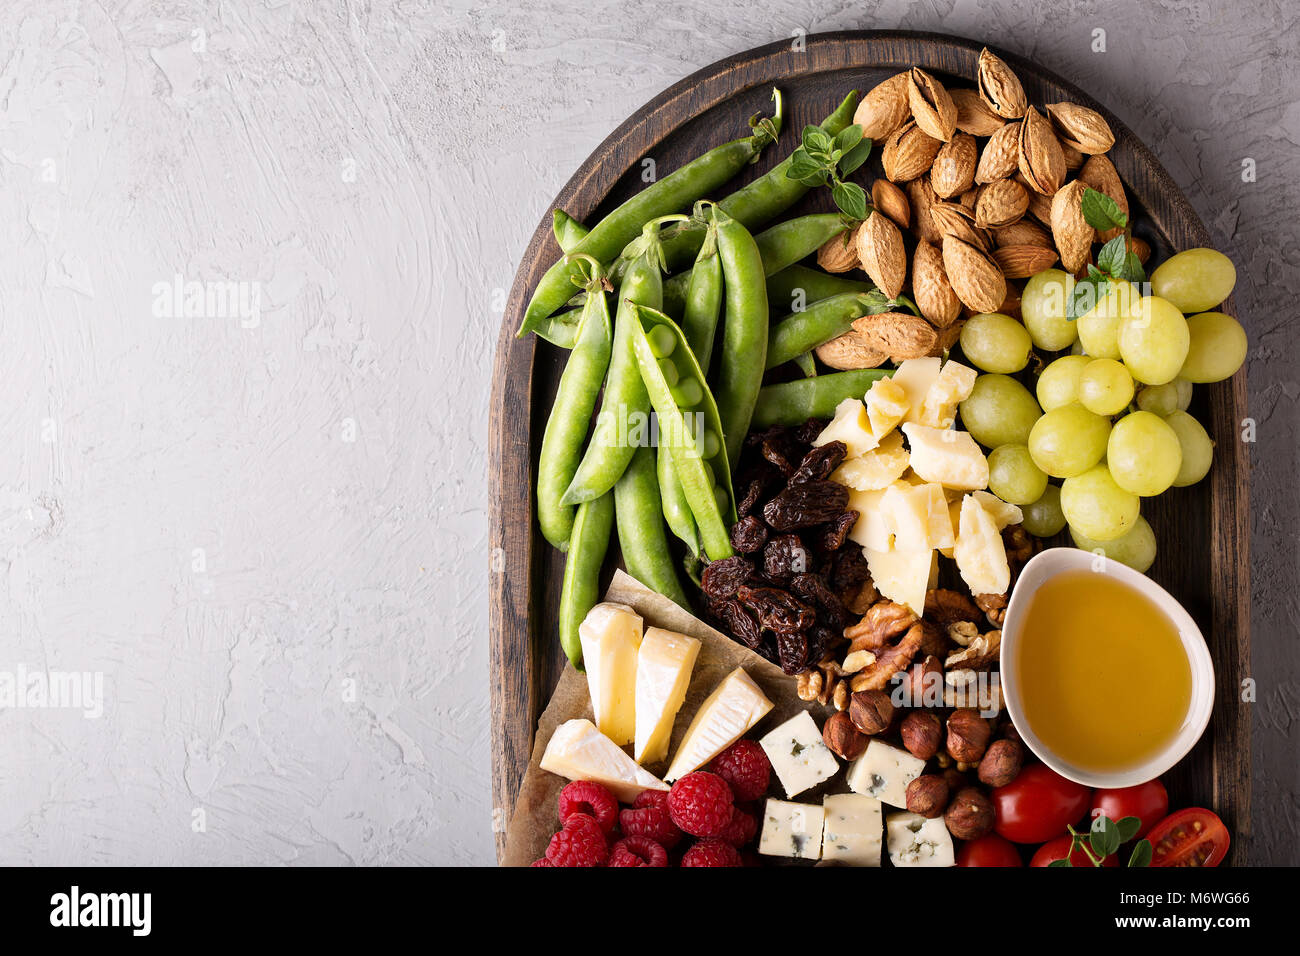 Cheese and vegetables board with nuts and honey - Stock Image